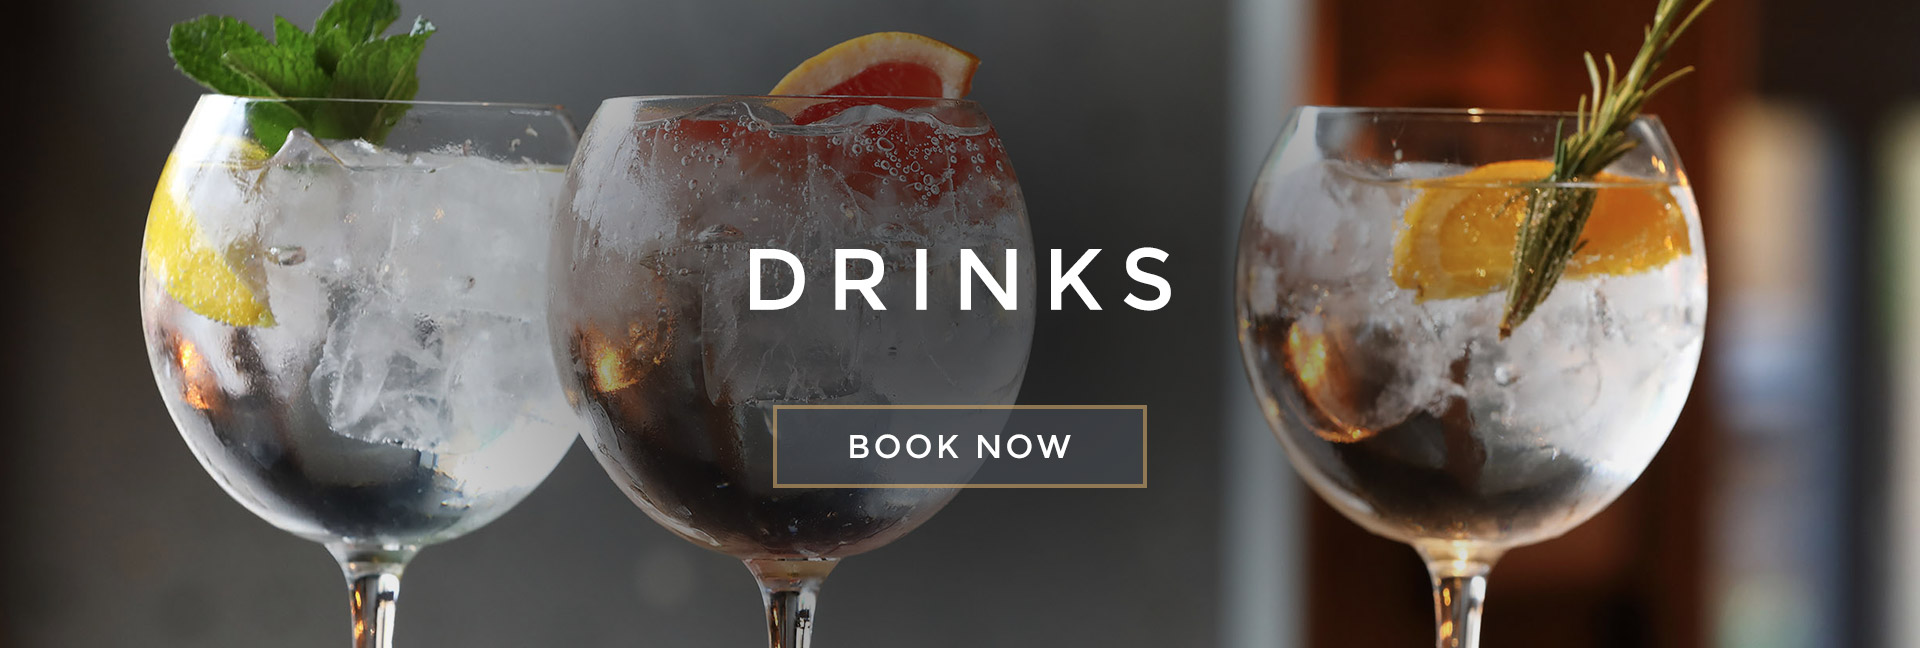 Drinks at All Bar One Appold Street - Book your table